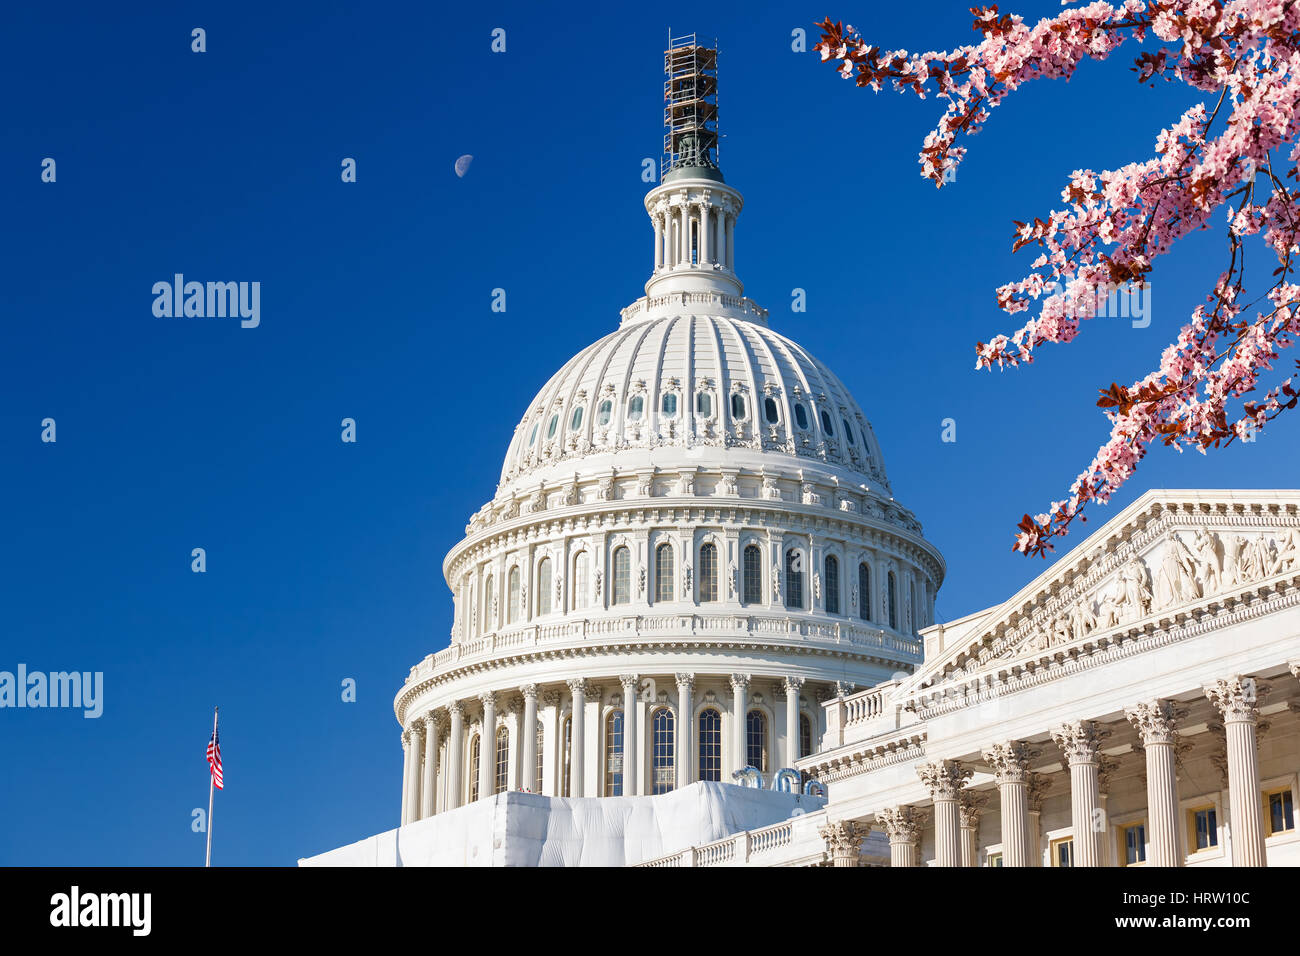 US Capitol over blue sky with blooming cherry on foregraund - Stock Image